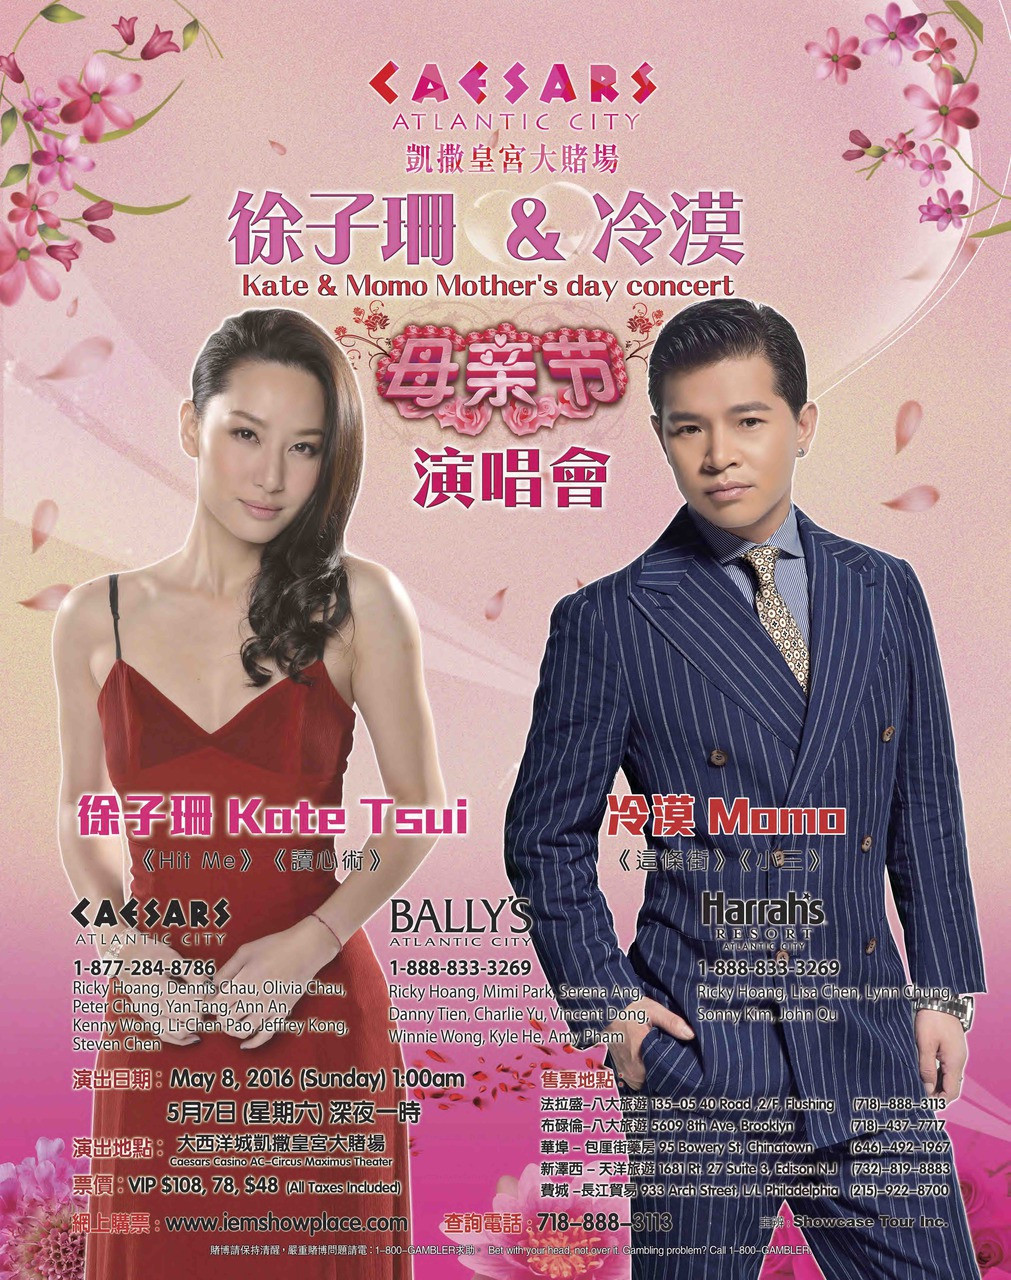 Kate & Momo Mother's day Concert 2016